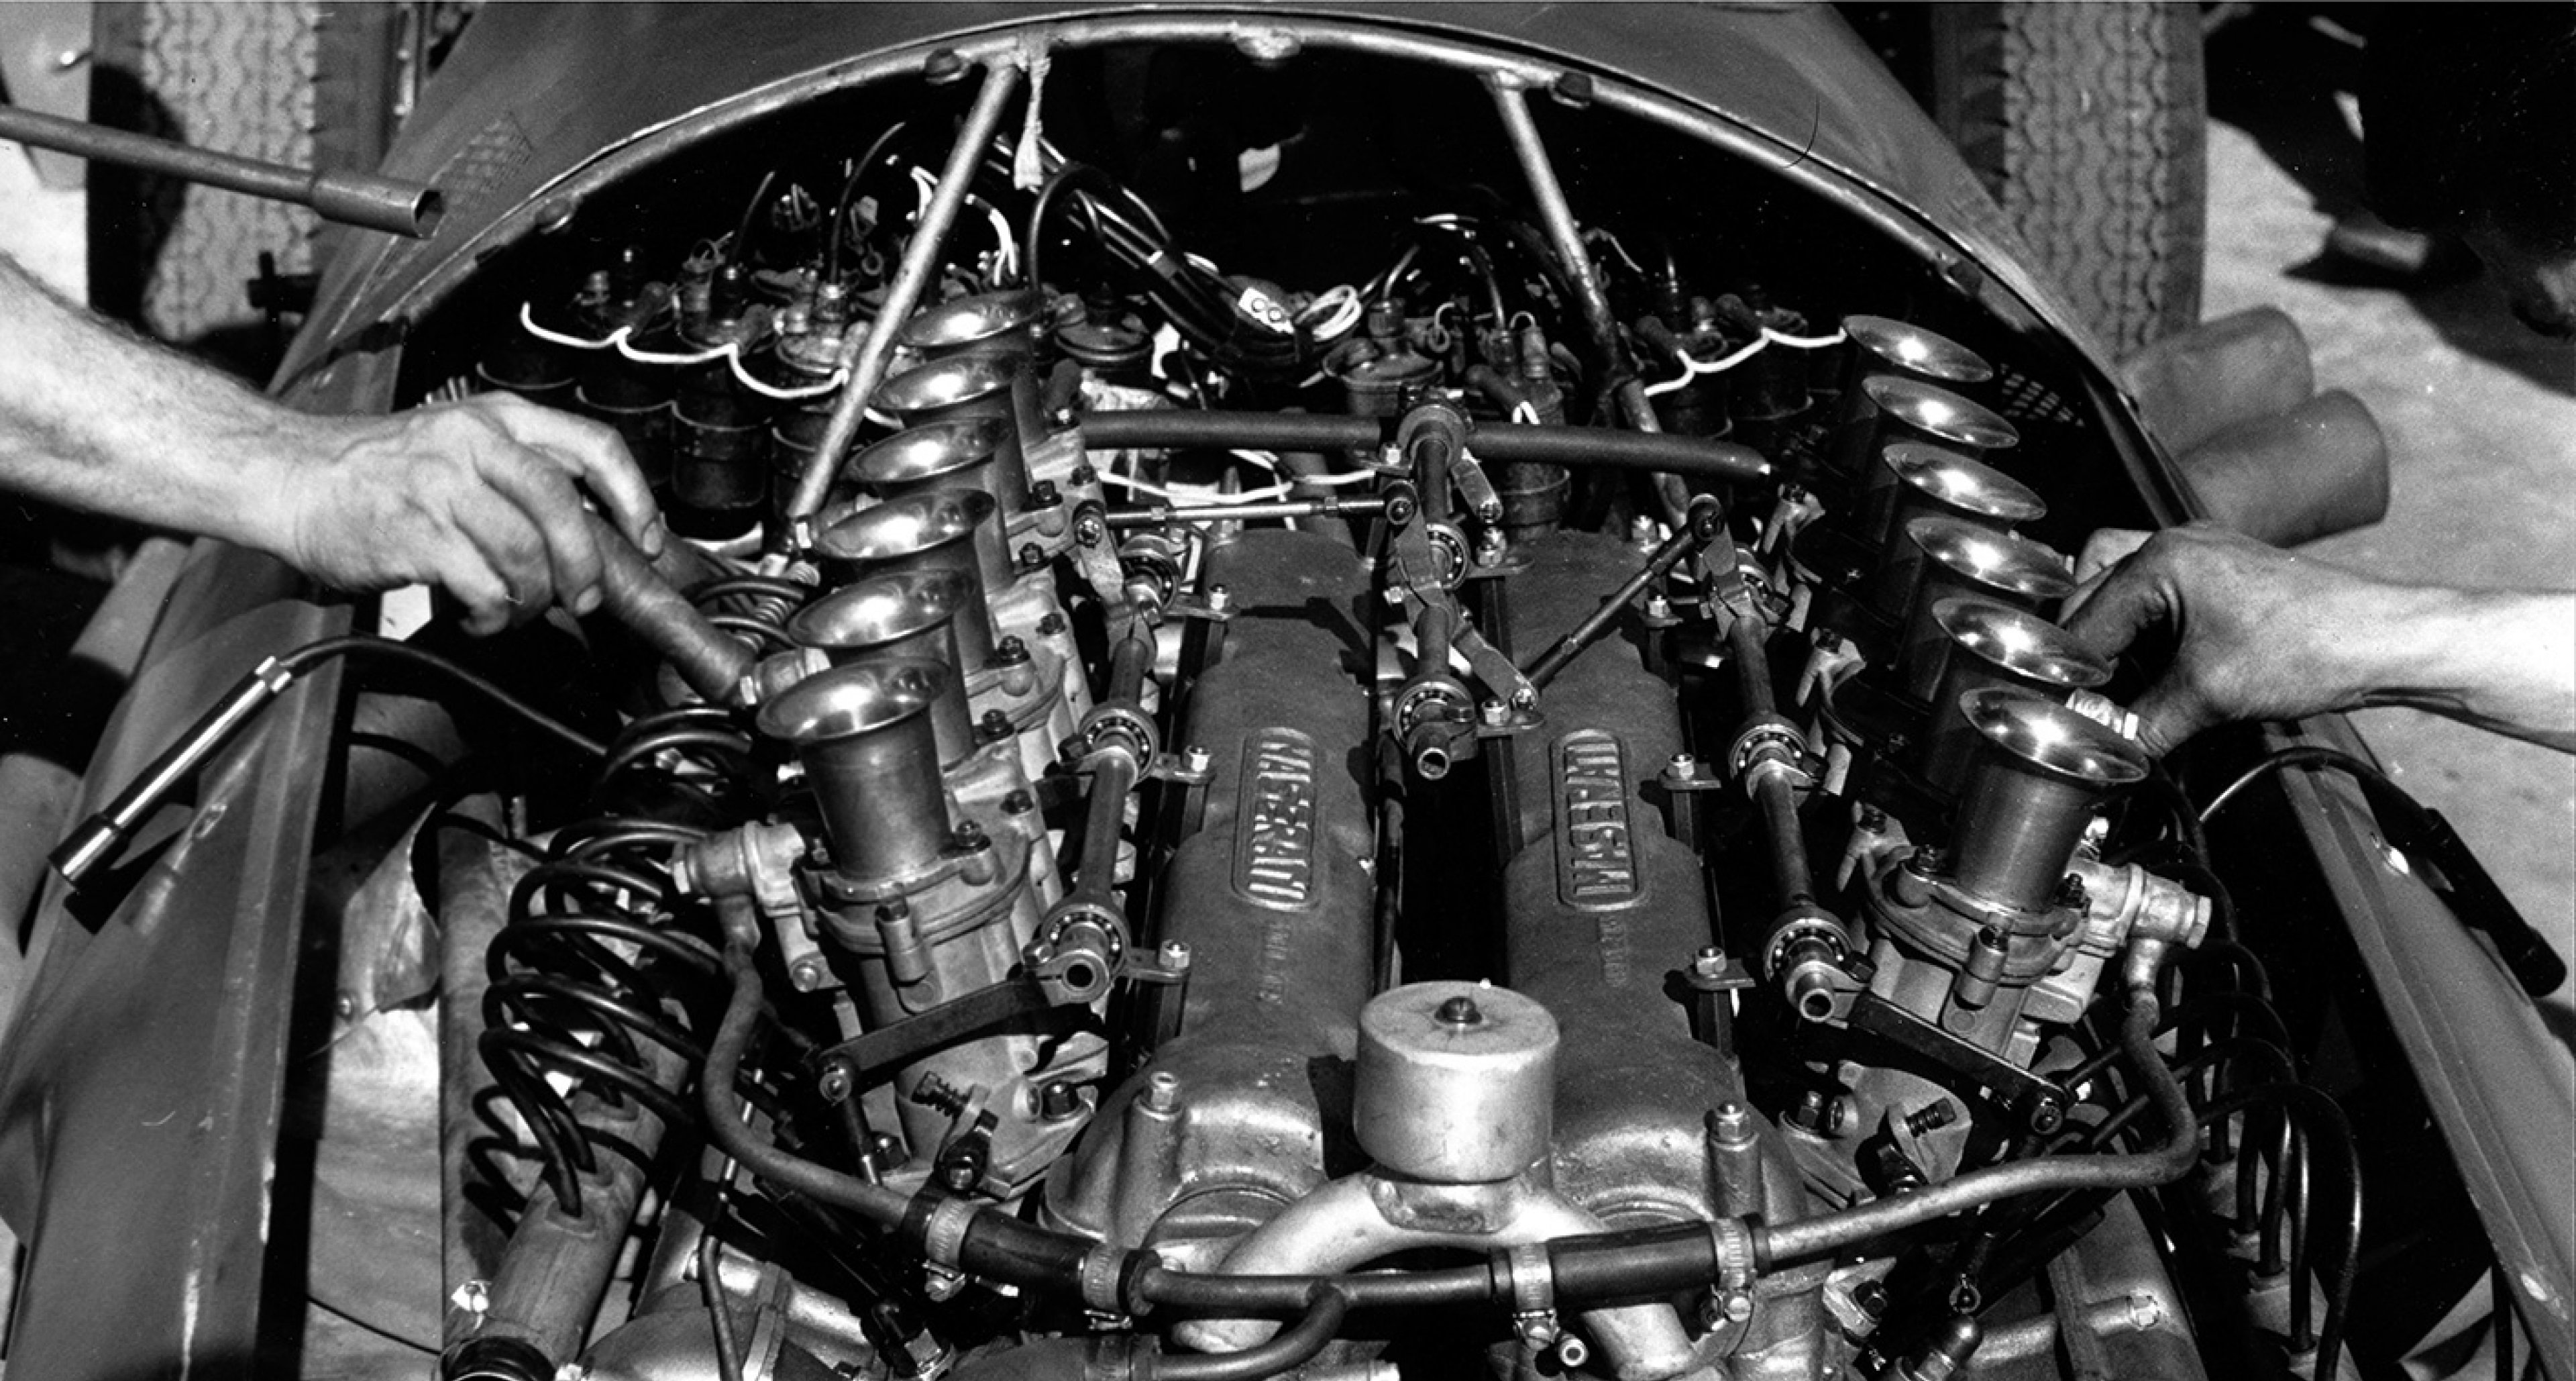 Last-minute tweaks to the V12 of a 250F at Pescara GP, 1957